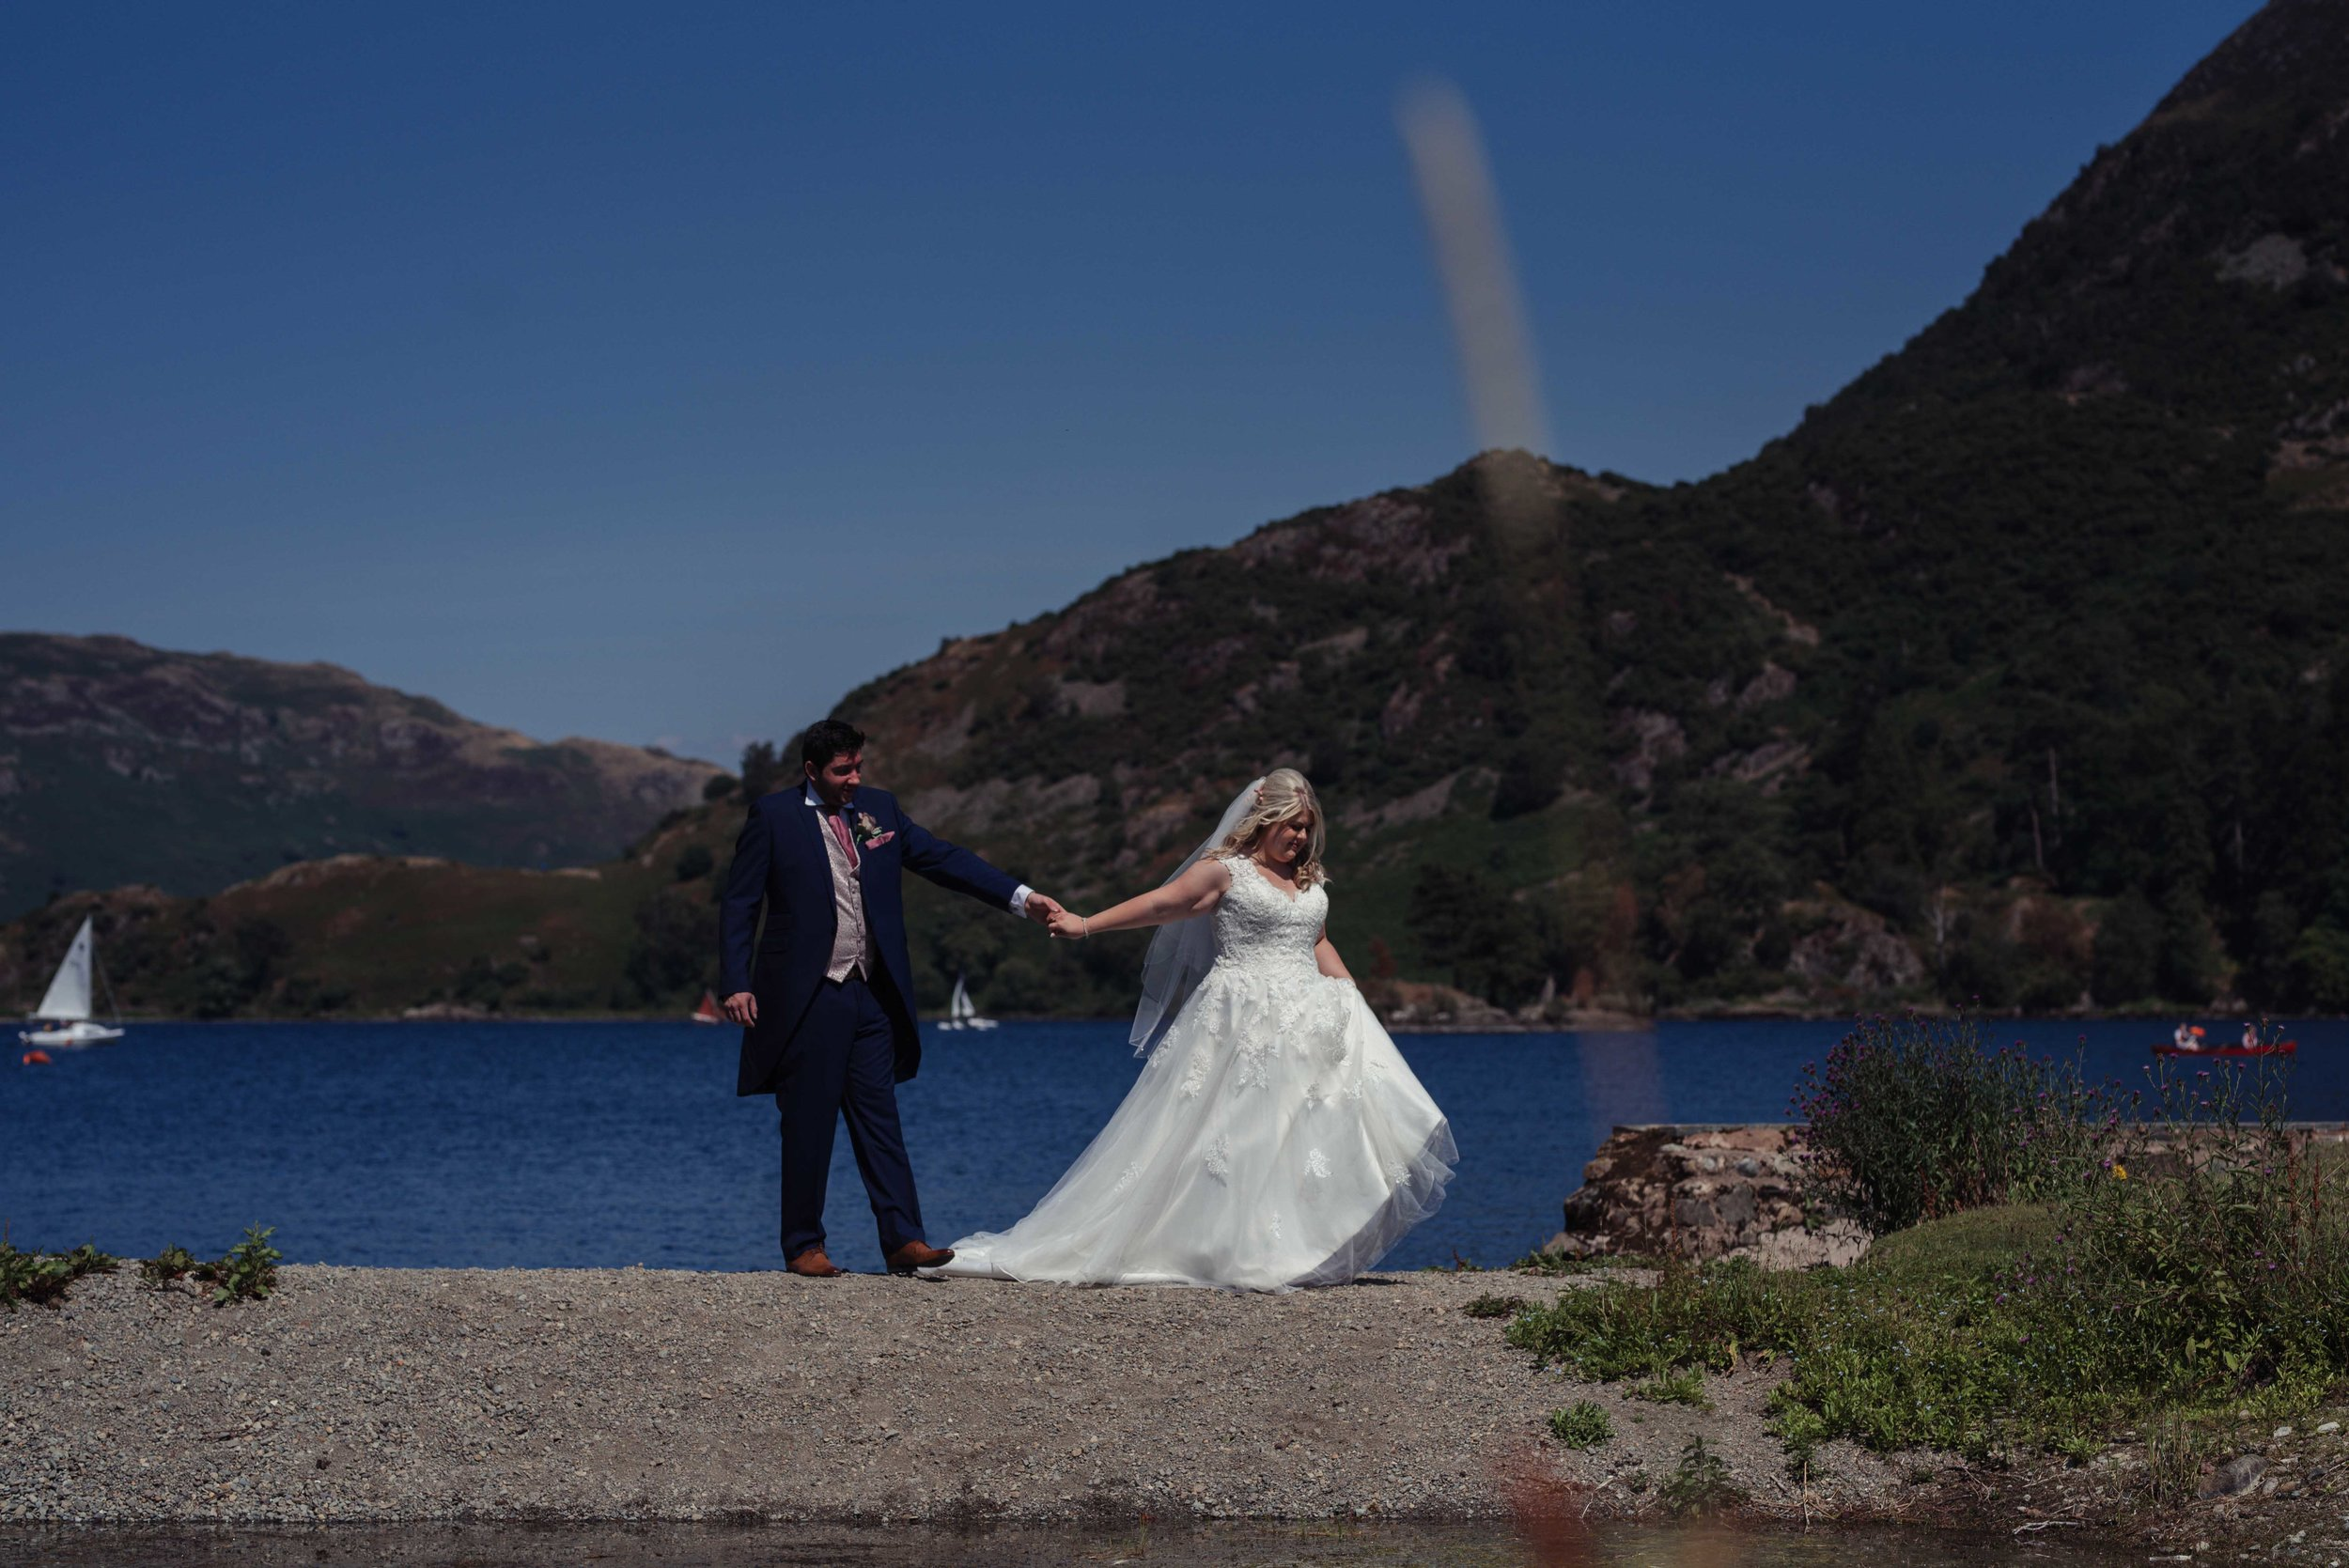 The bride and groom have a walk at the edge of the lake at the inn on the lake